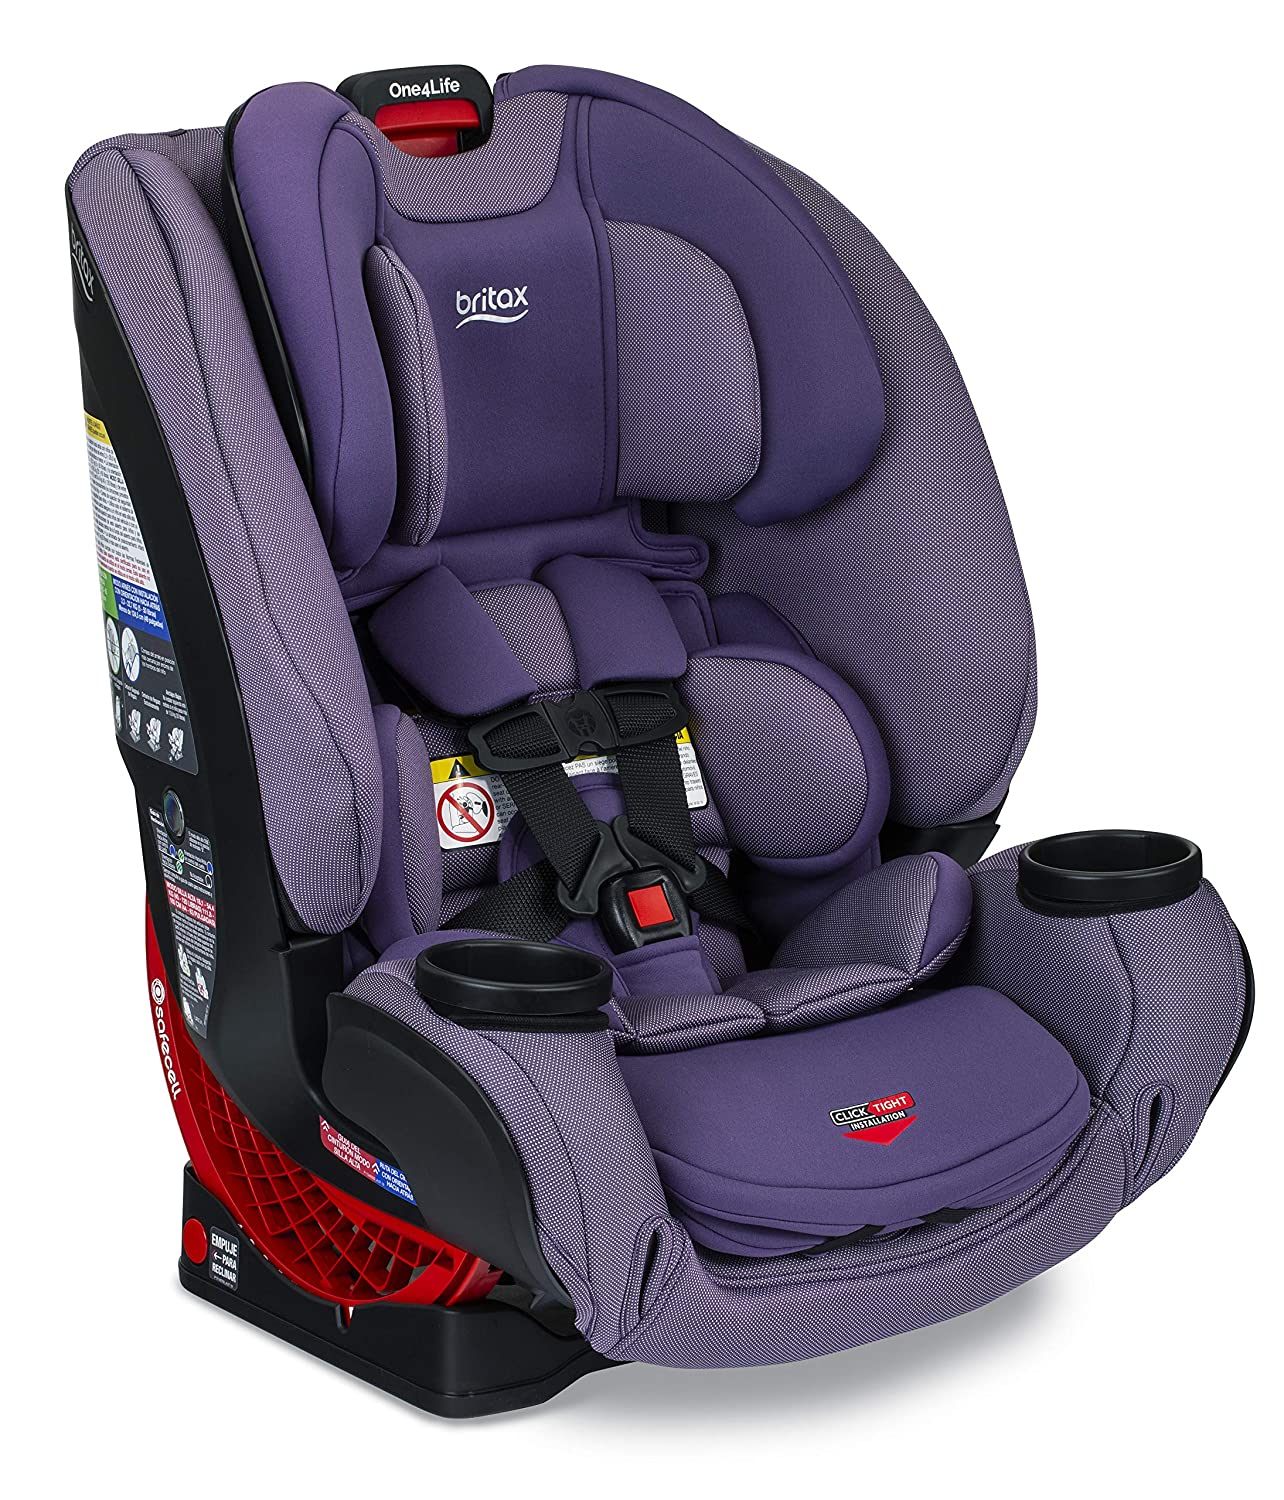 Britax All-in-One  Convertible Car Seat